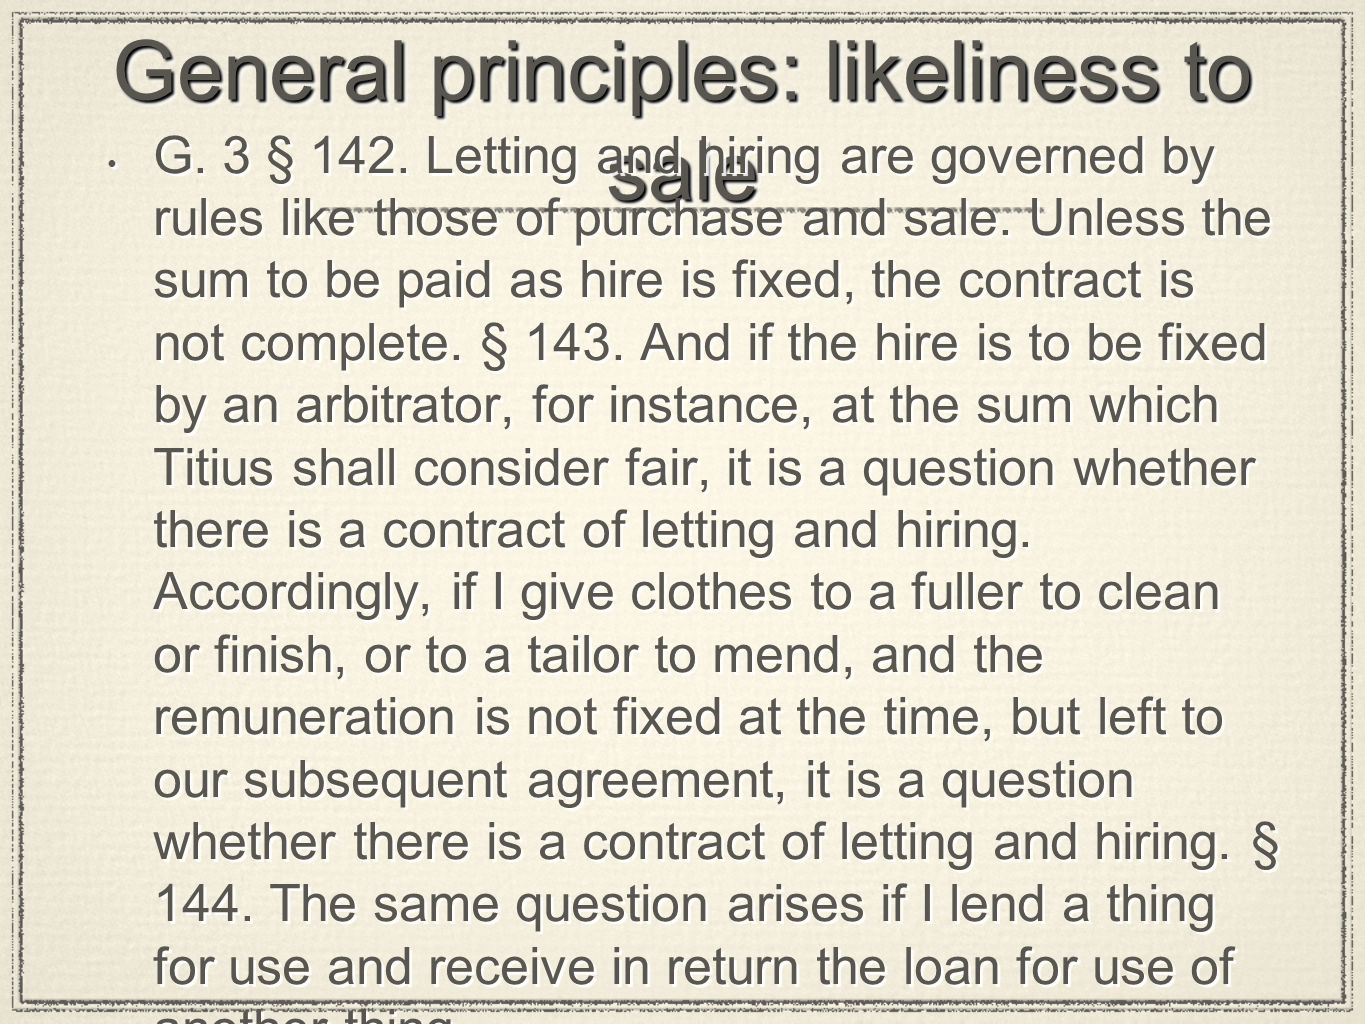 General principles: likeliness to sale G. 3 § 142. Letting and hiring are governed by rules like those of purchase and sale. Unless the sum to be paid